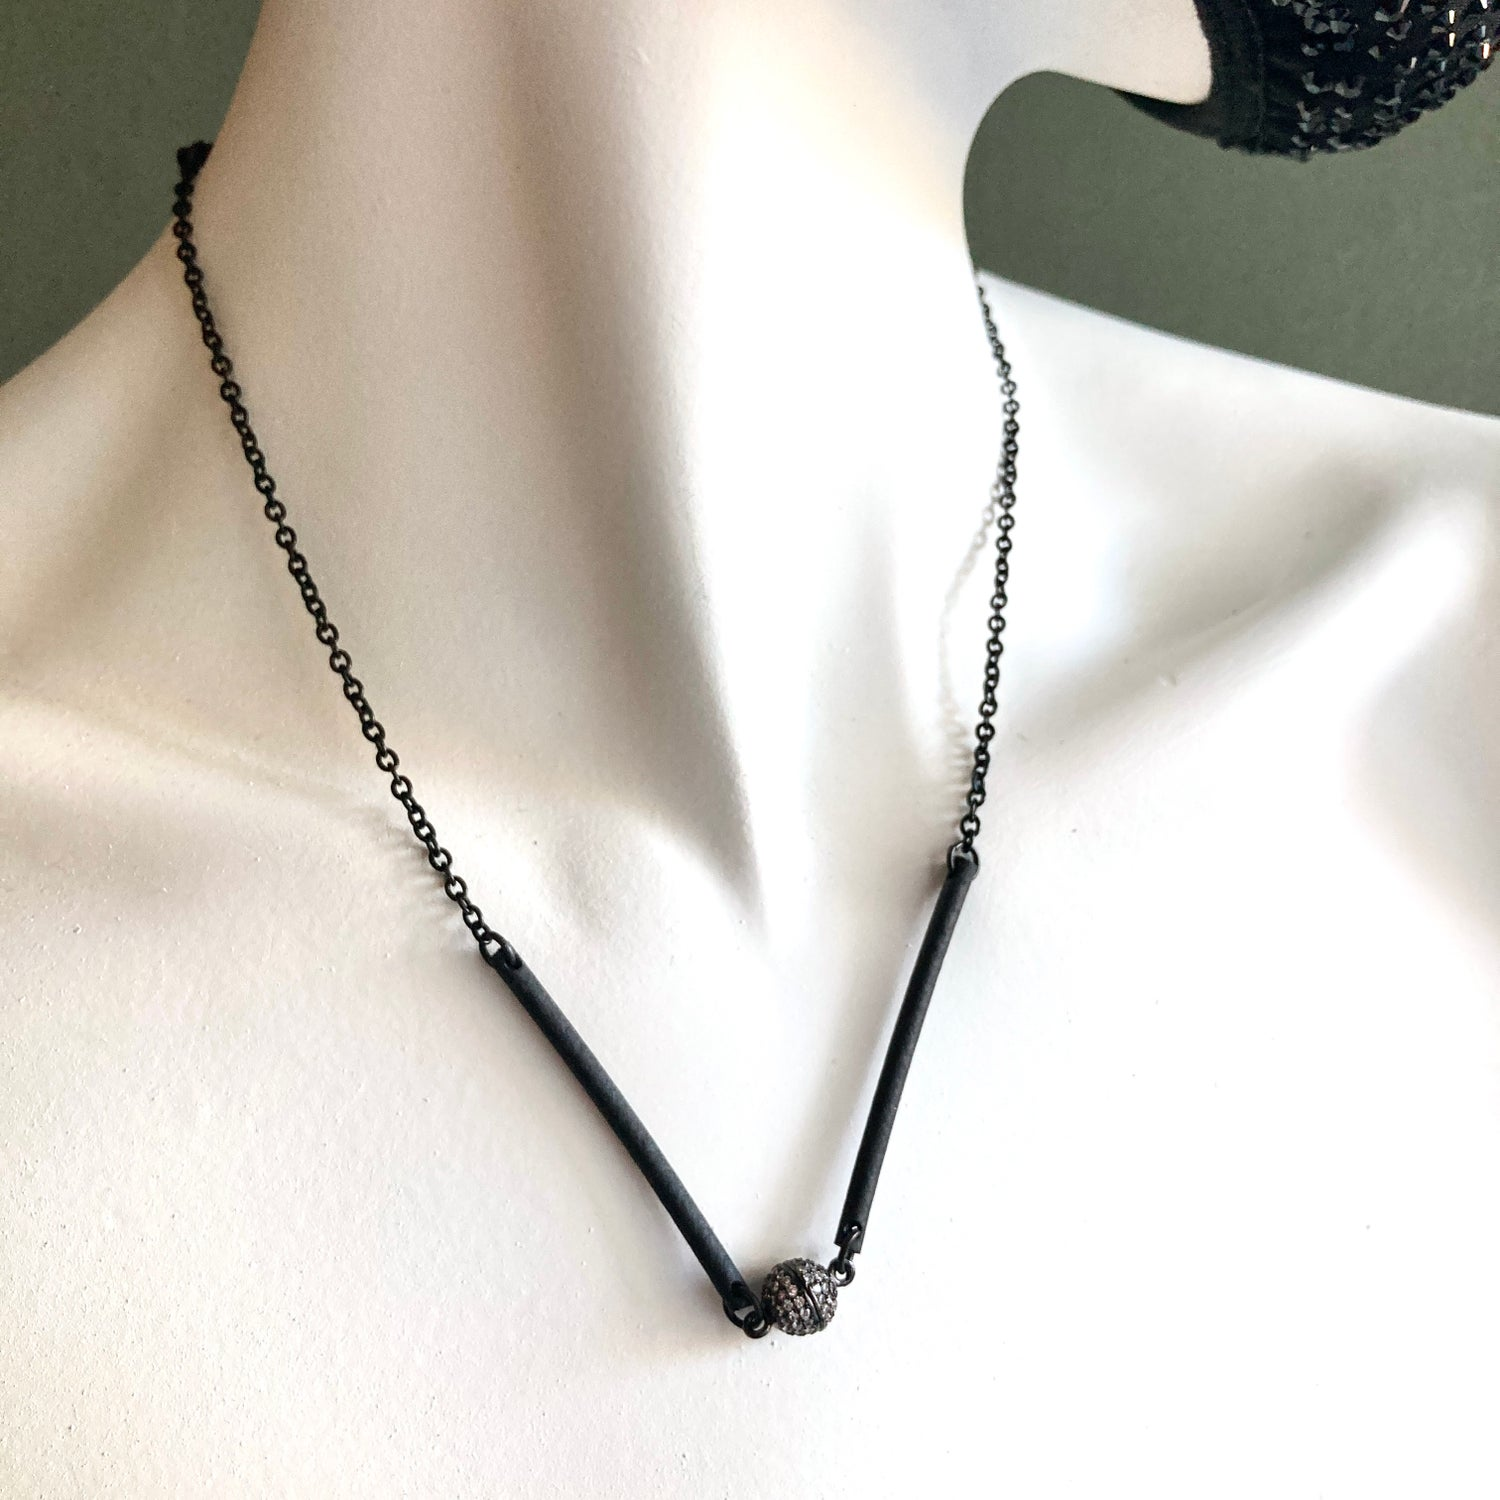 """Image of 18"""" or 21"""" Black Stainless Steel & Rubber Pavé Convertible Necklace/Mask Chain #5"""